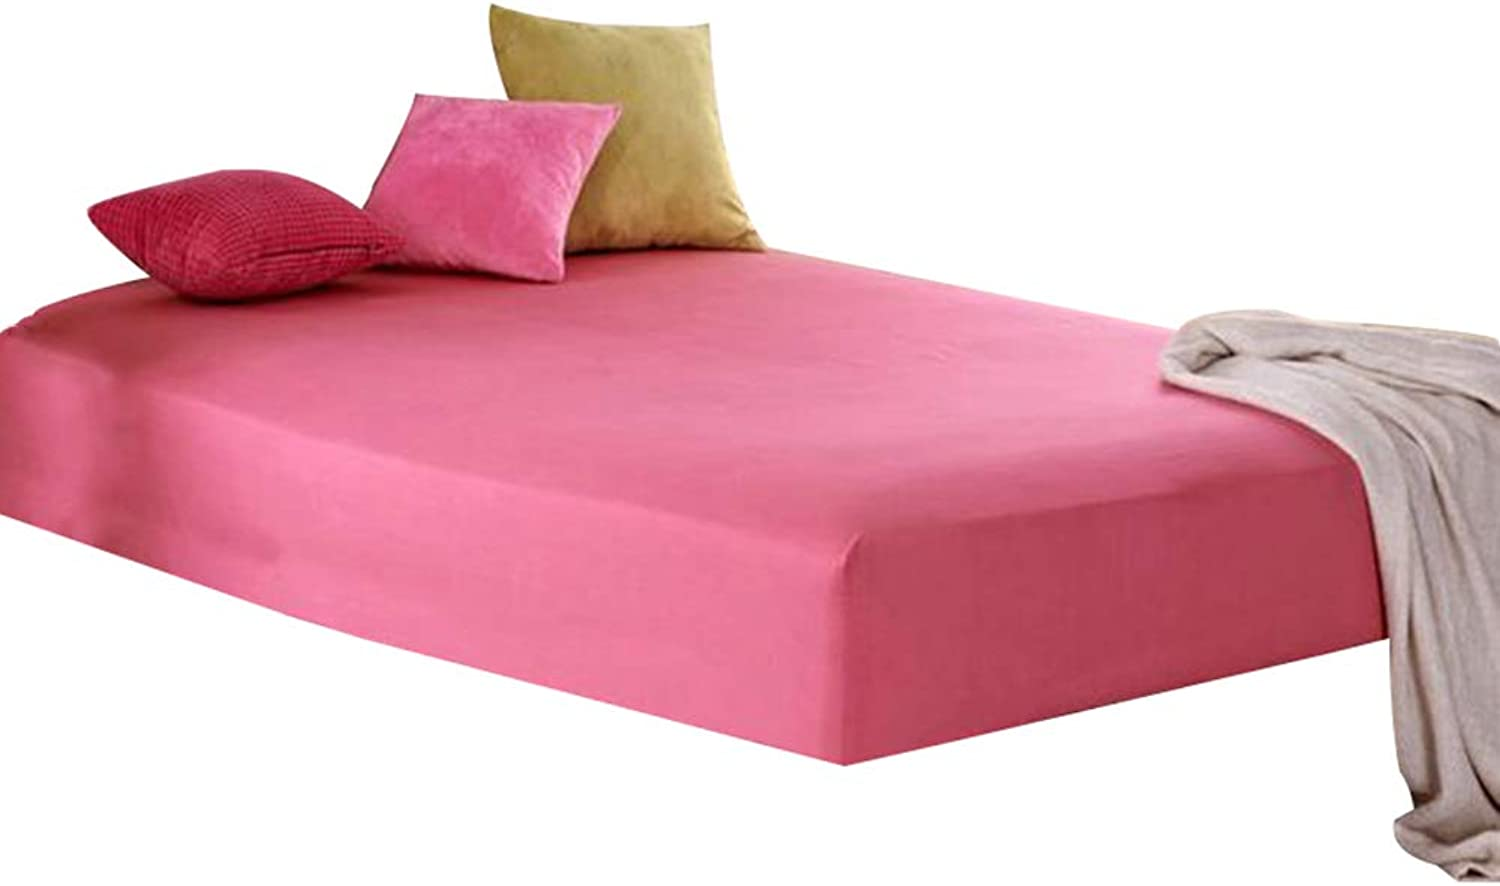 ZHAOHUI Mattress Predector Cotton Breathable Hypoallergenic Comfortable Ultra-Thin Soft Skin-Friendly, 4 Packages, 6 colors, 2 Sizes (color   Pink-A-2pcs, Size   Queen)